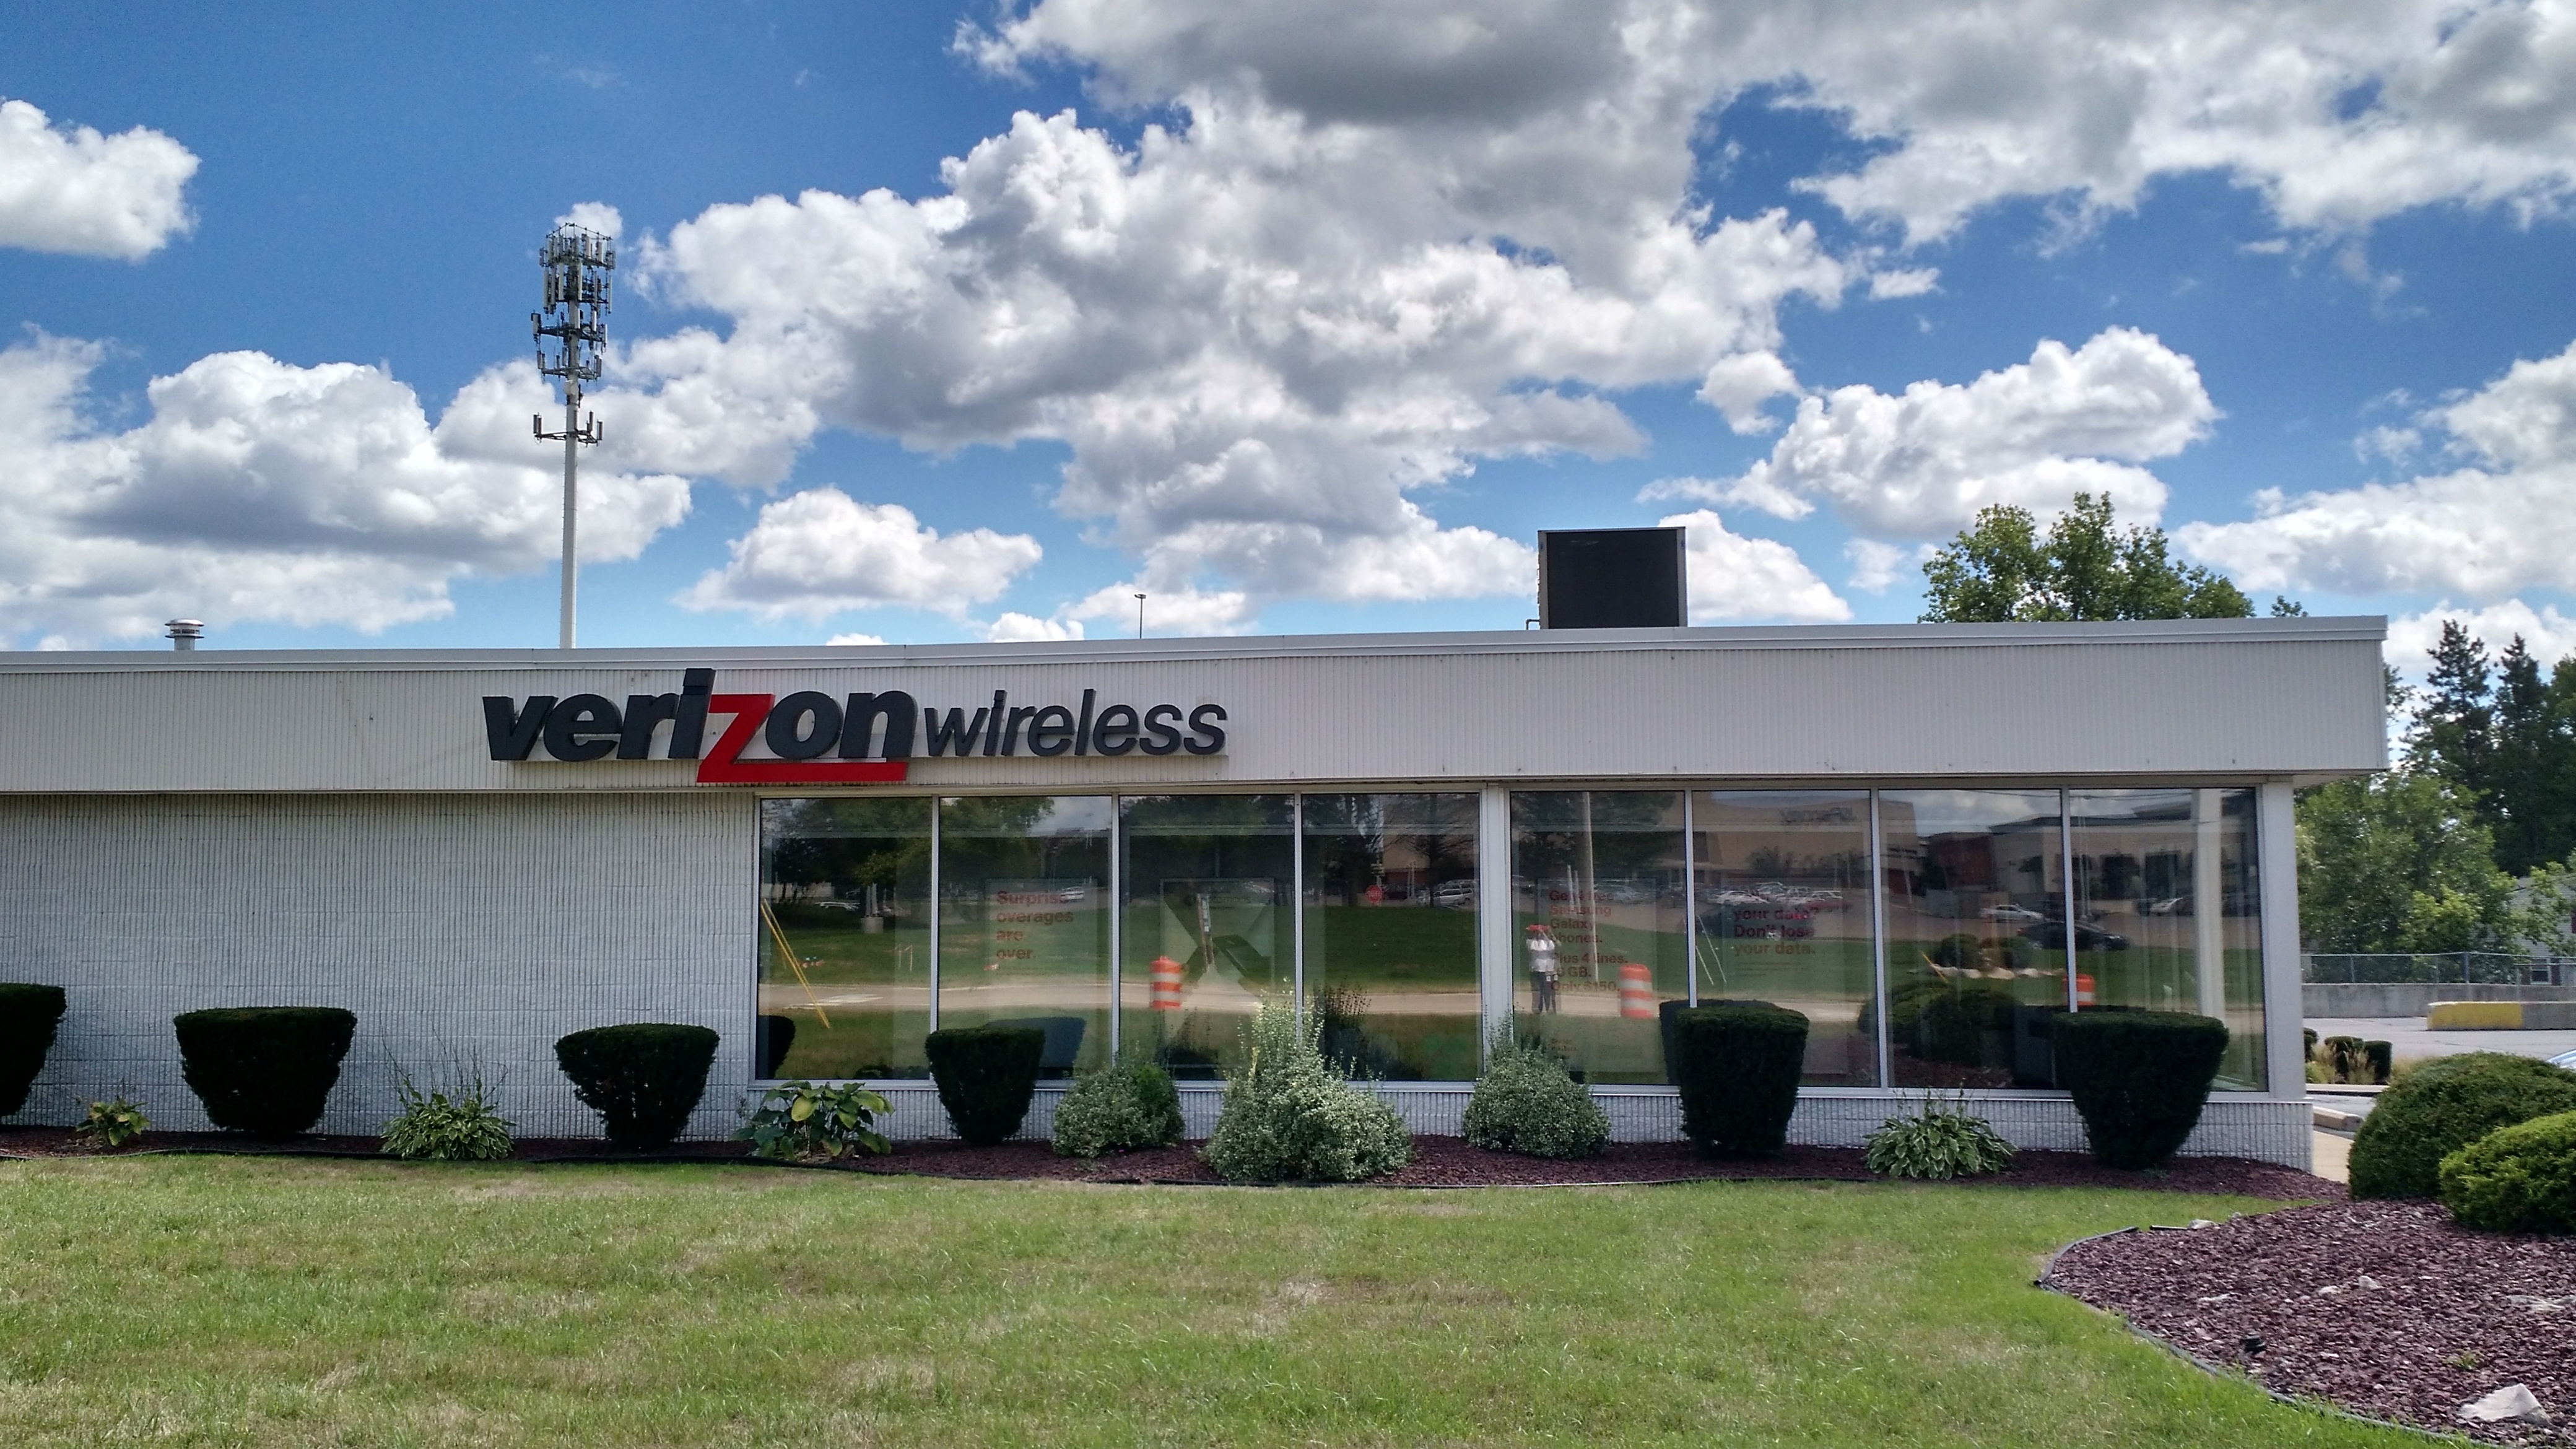 Verizon image 0